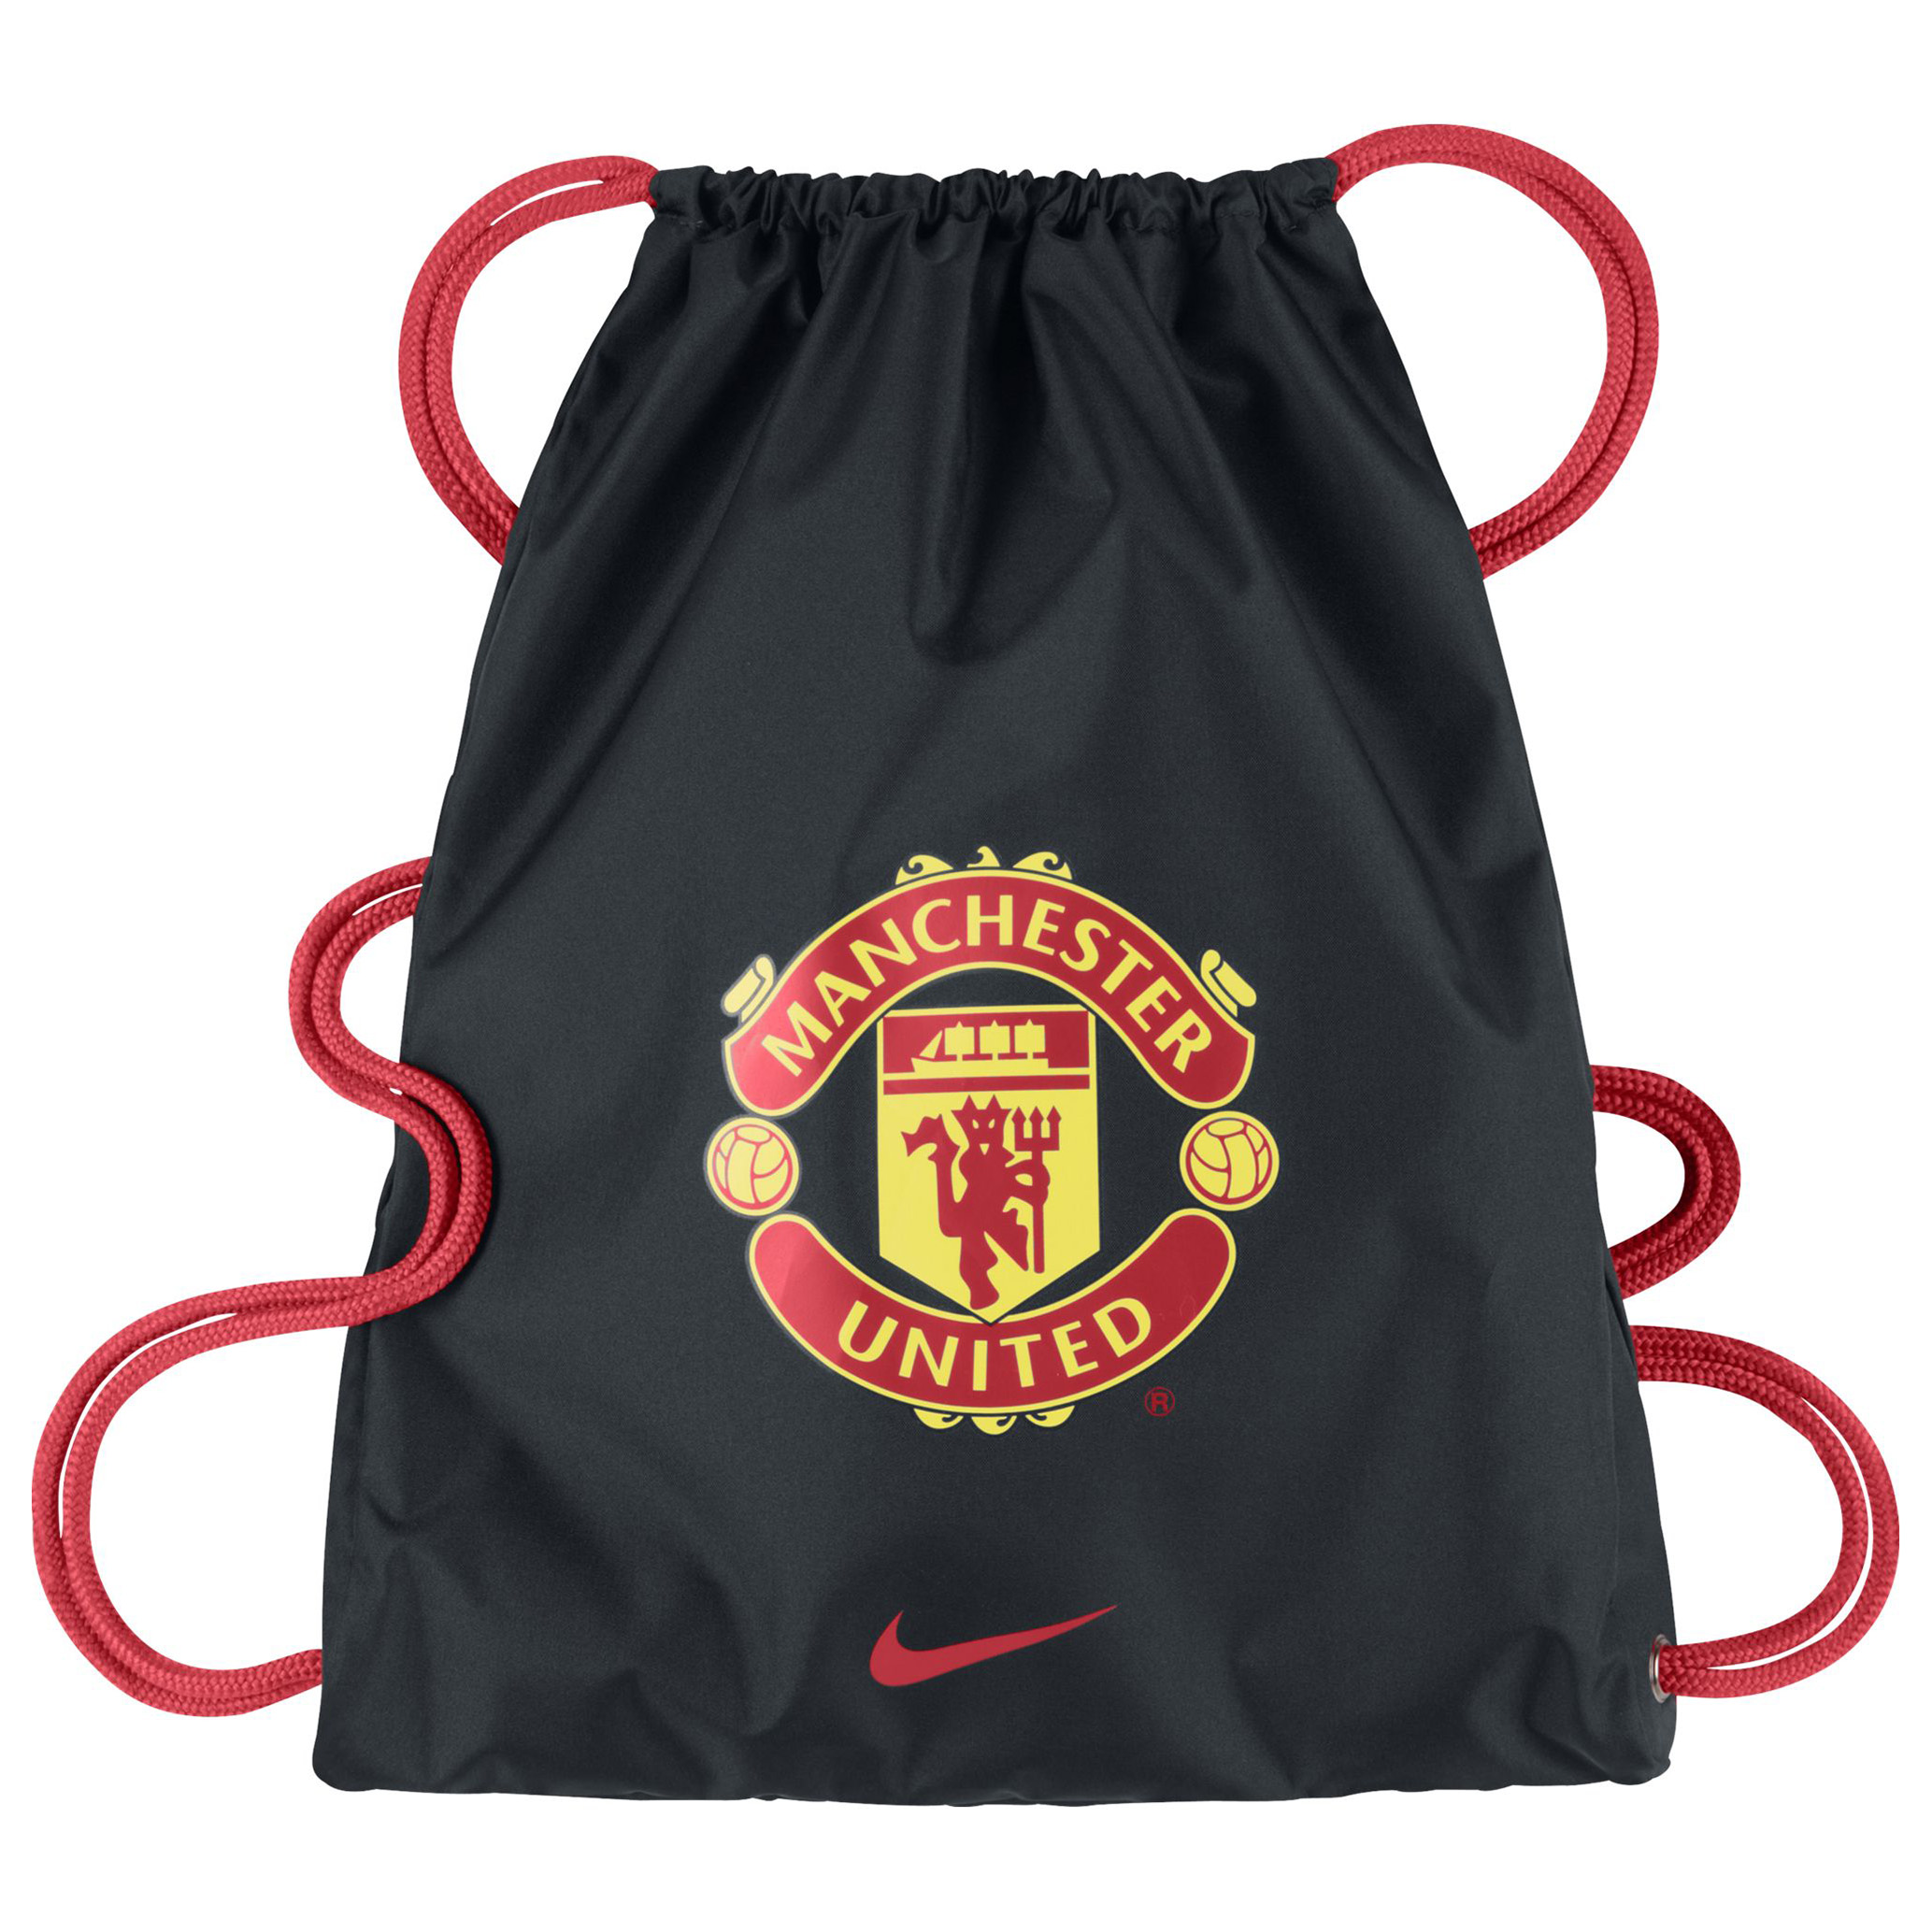 Manchester United Allegiance Gym Sack 3.0 14/15-Black